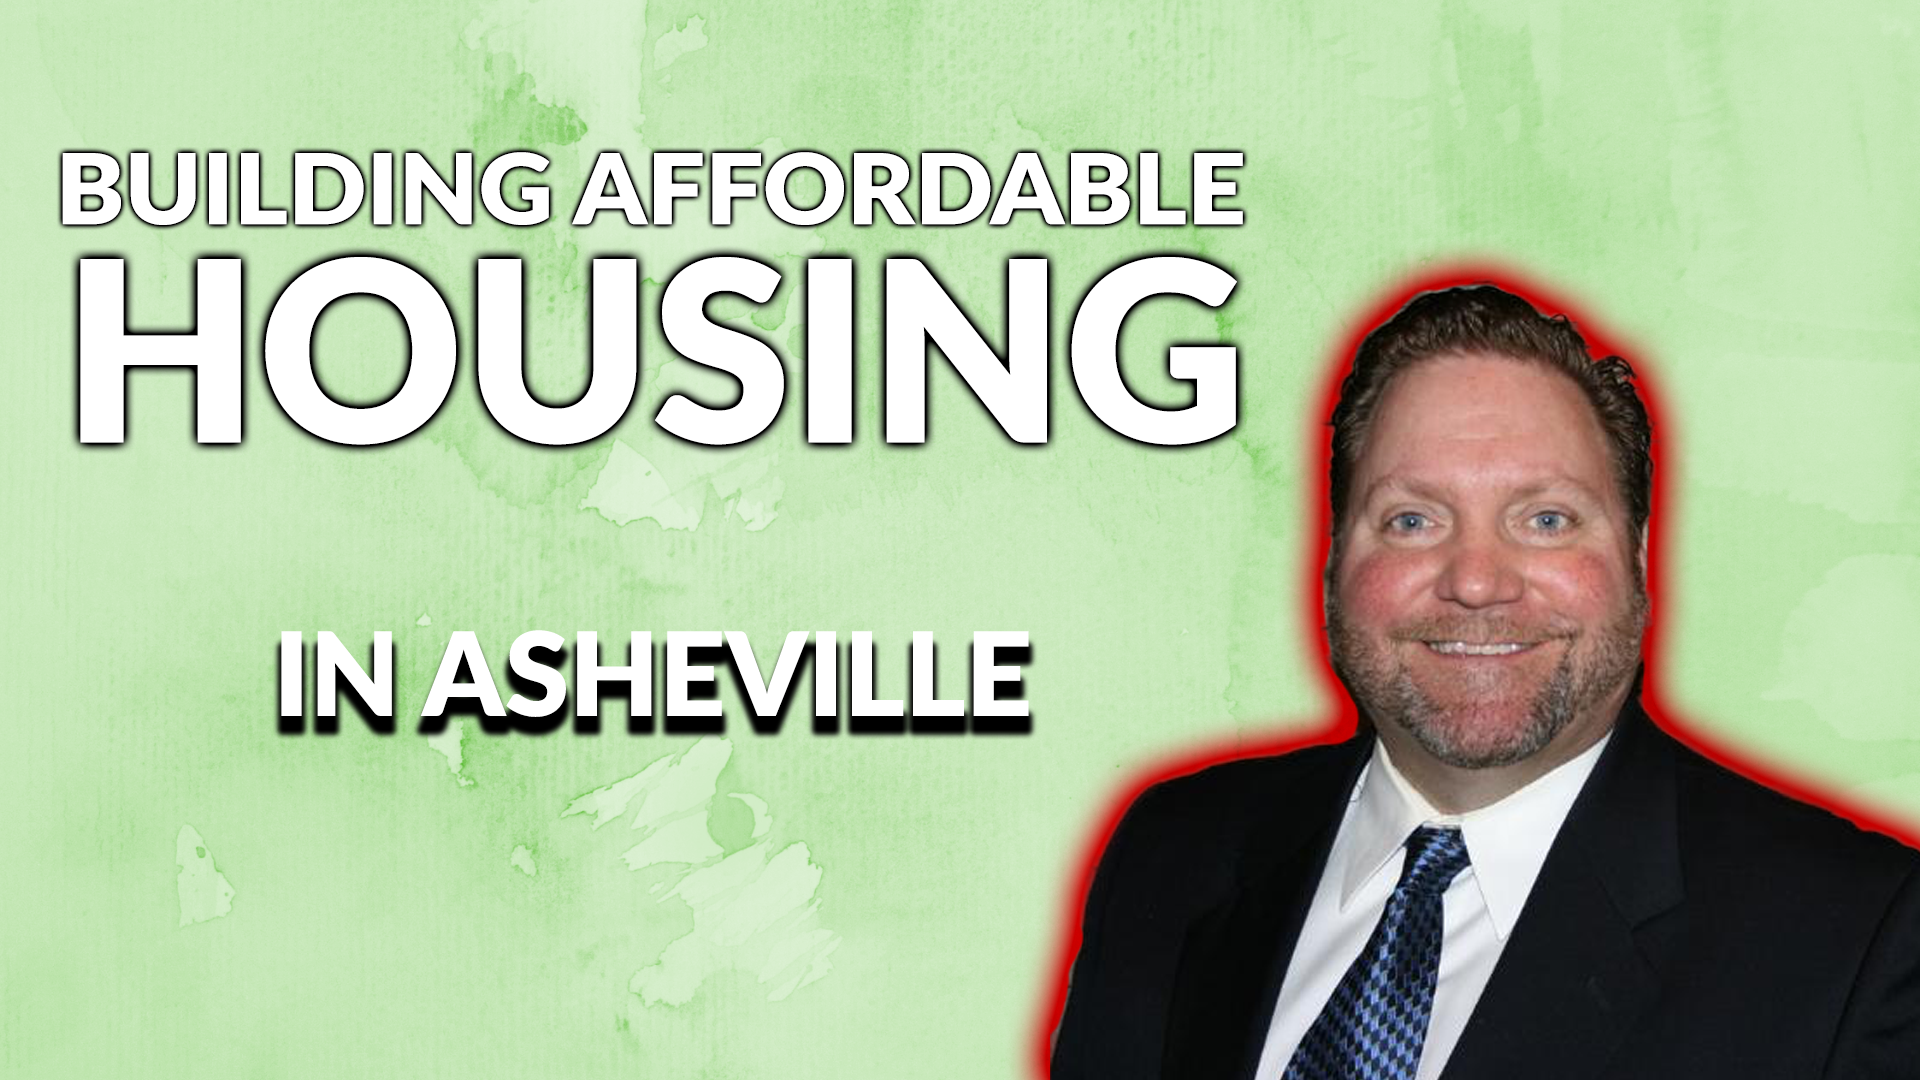 BUILDING AFFORDABLE HOUSING IN ASHEVILLE W/ KIRK BOOTH | AREN 90